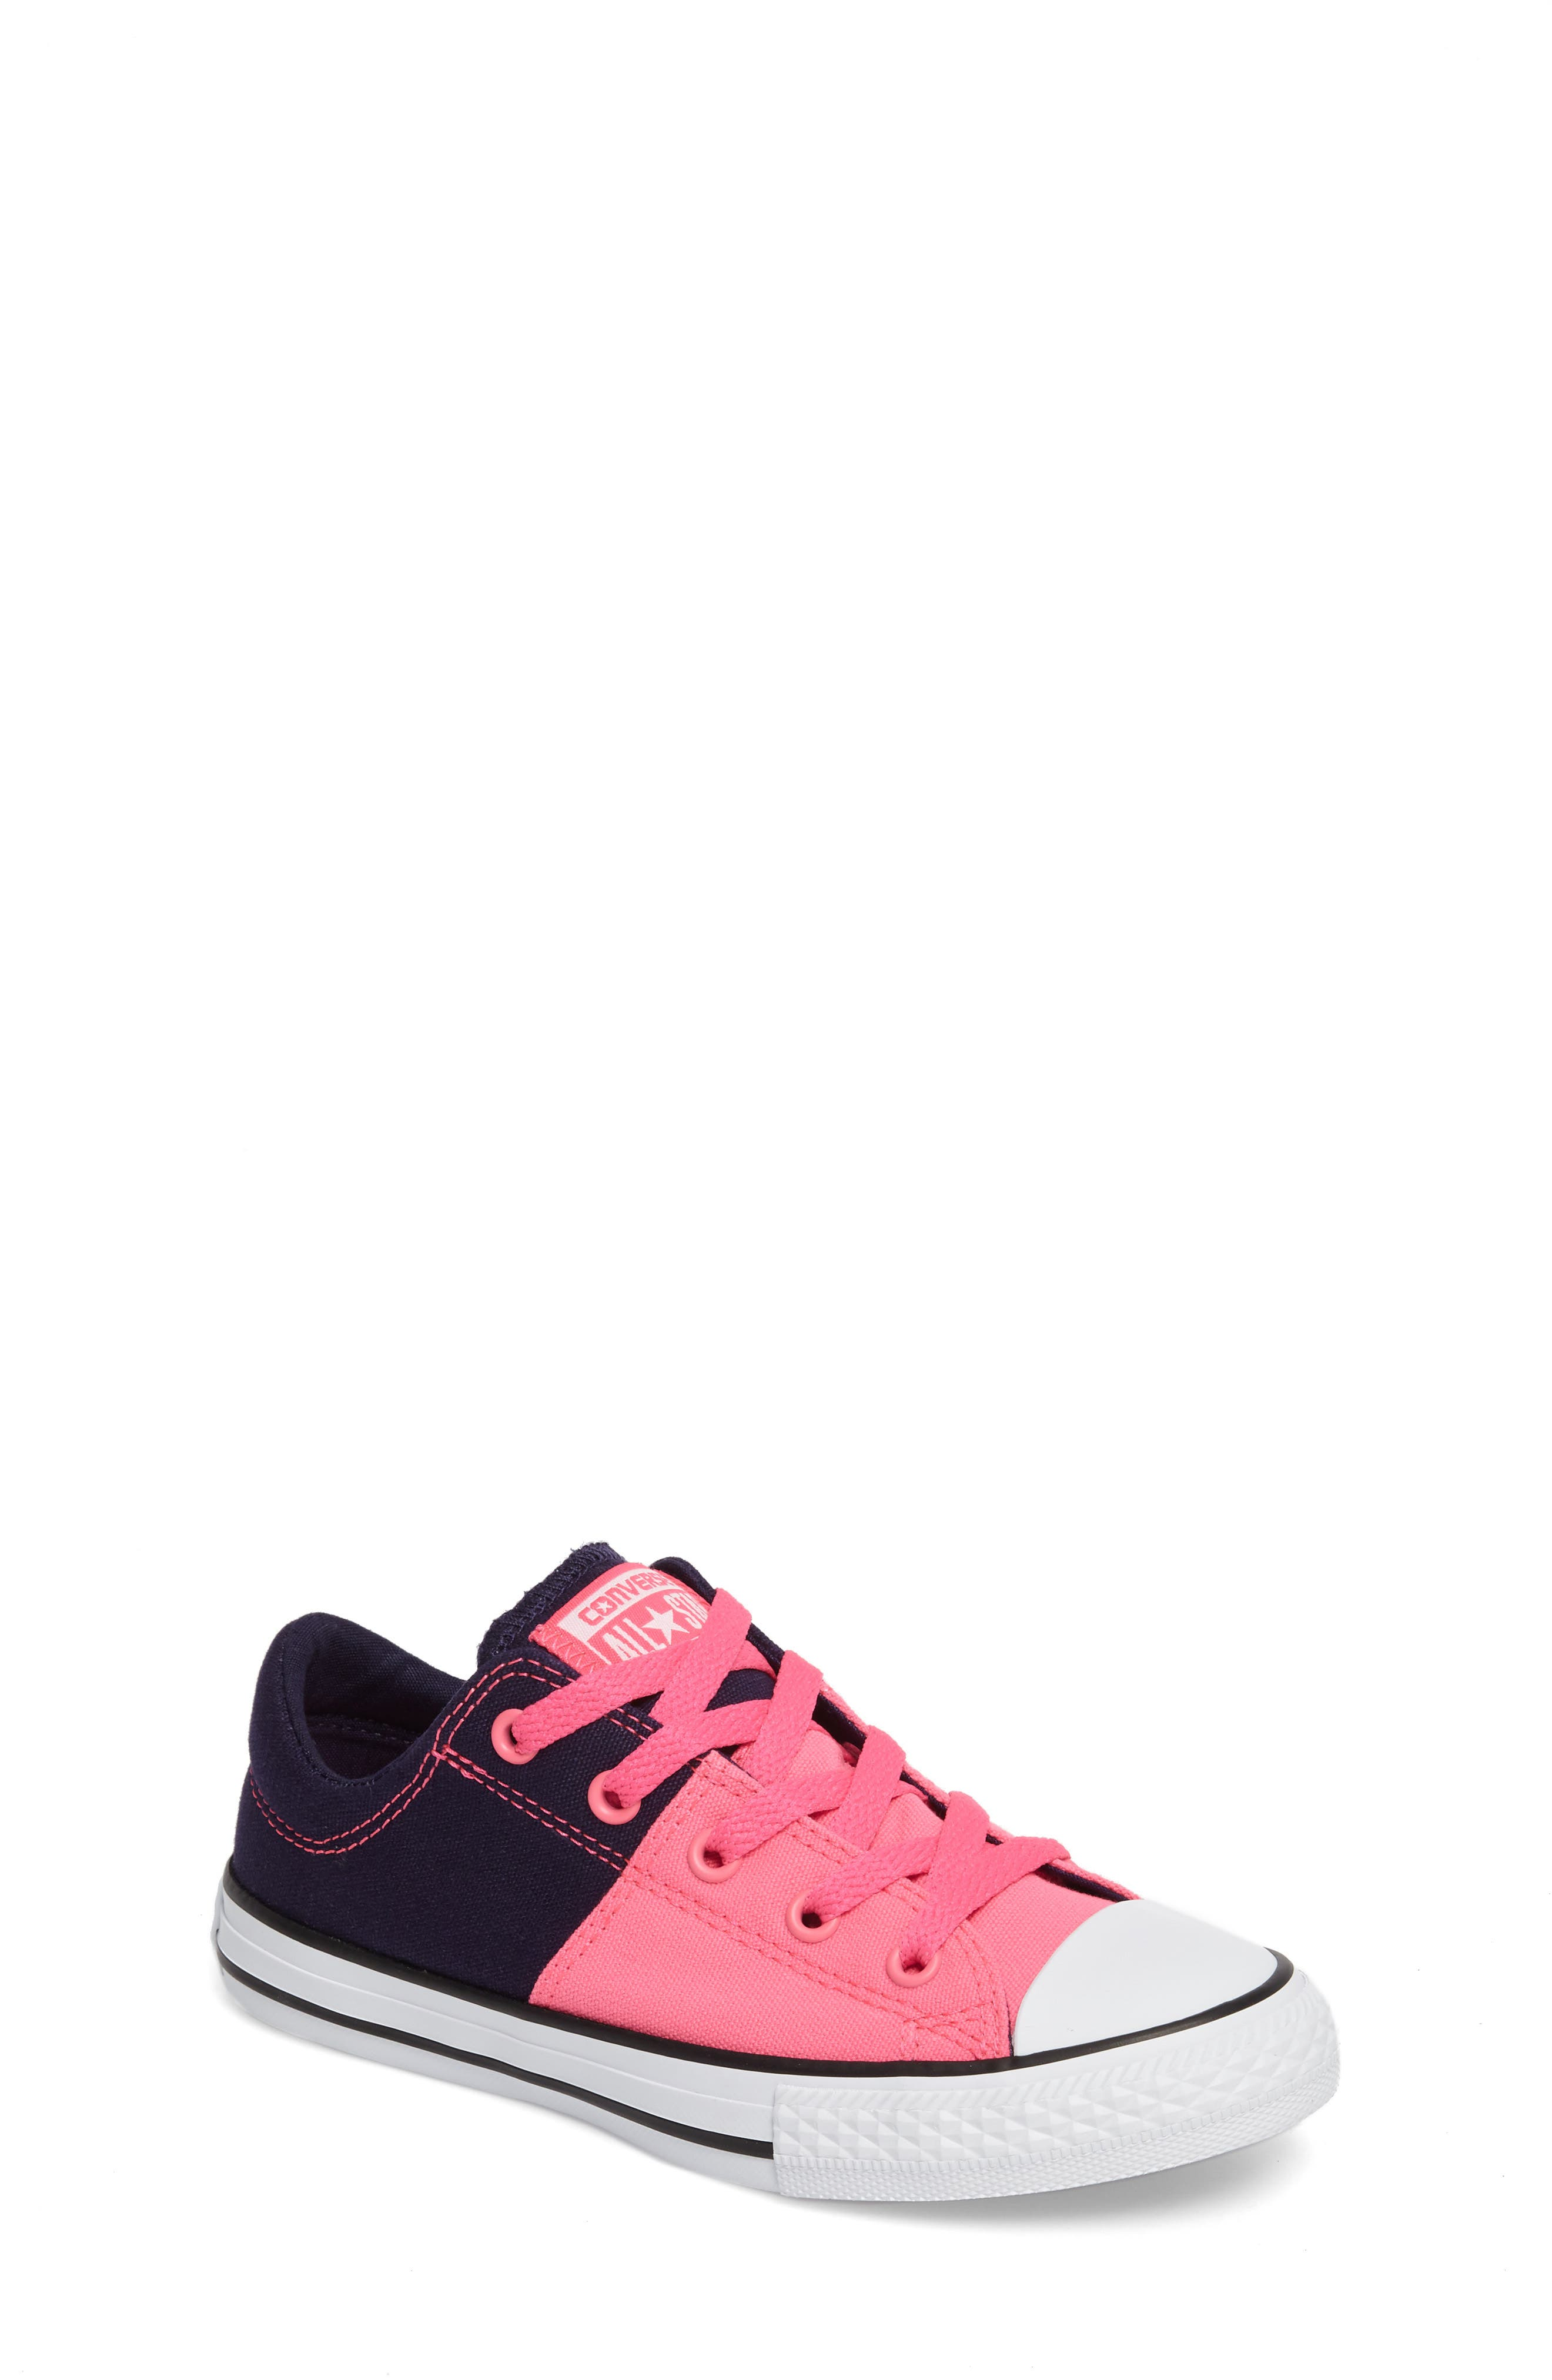 Chuck Taylor<sup>®</sup> All Star<sup>®</sup> Madison Low Top Sneaker,                             Main thumbnail 3, color,